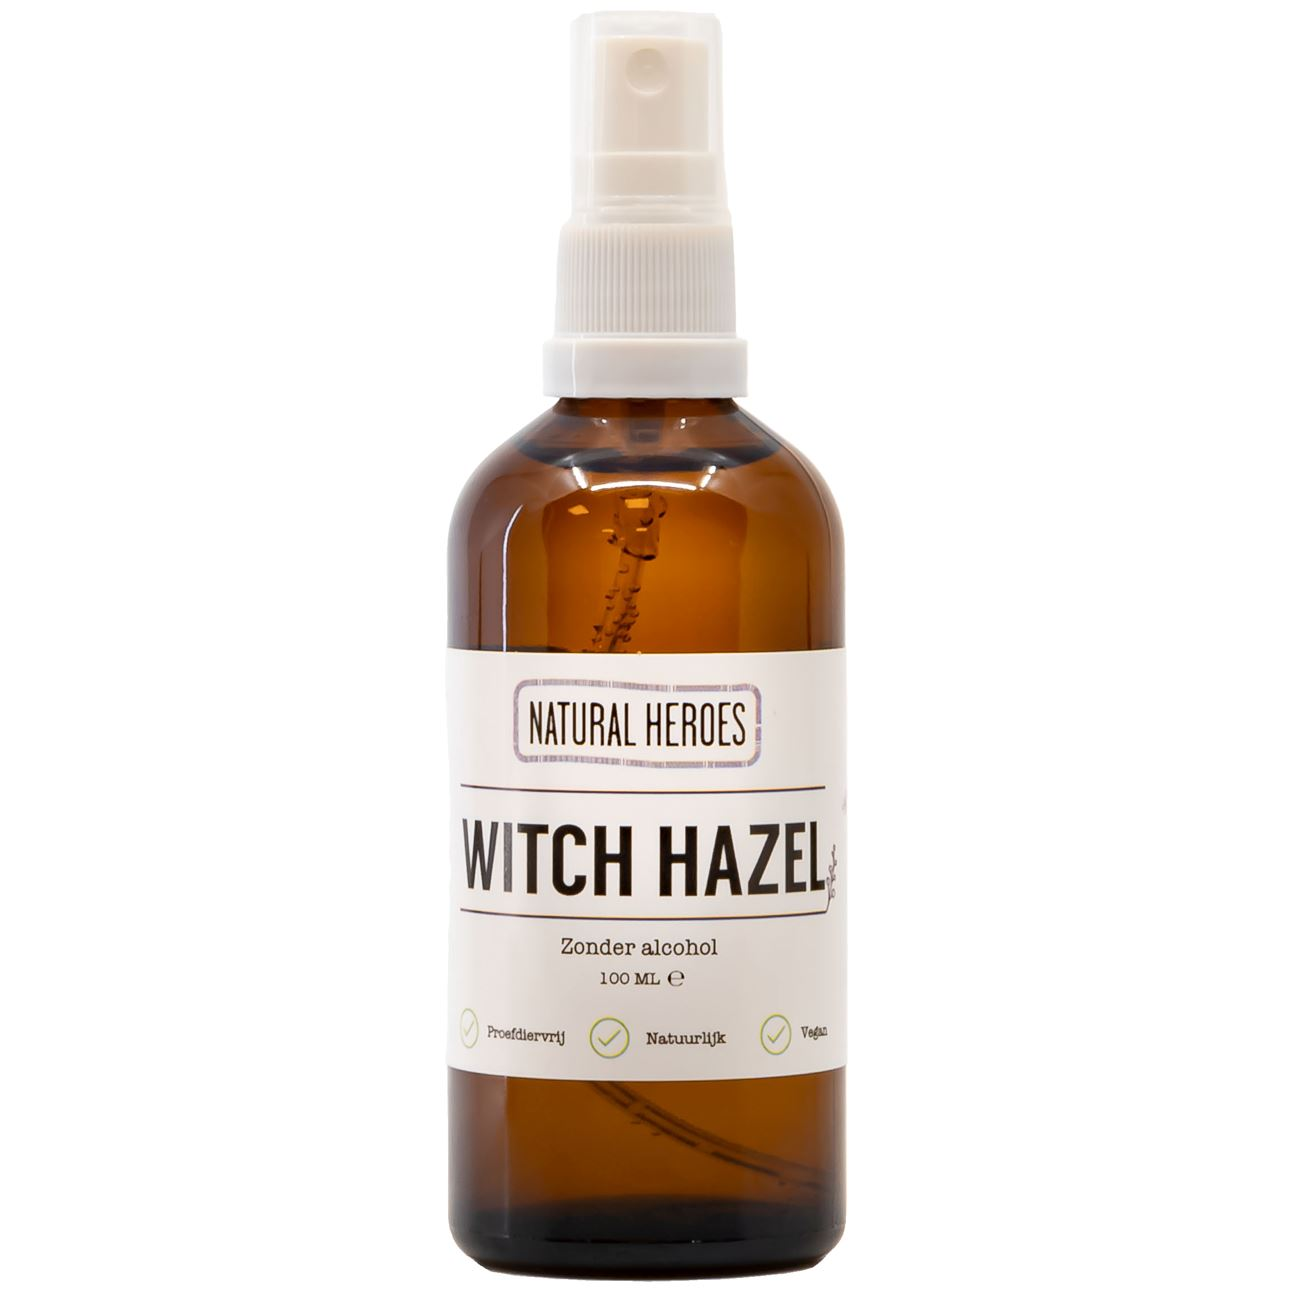 Witch Hazel (Zonder Alcohol) Natural Heroes 100 ml